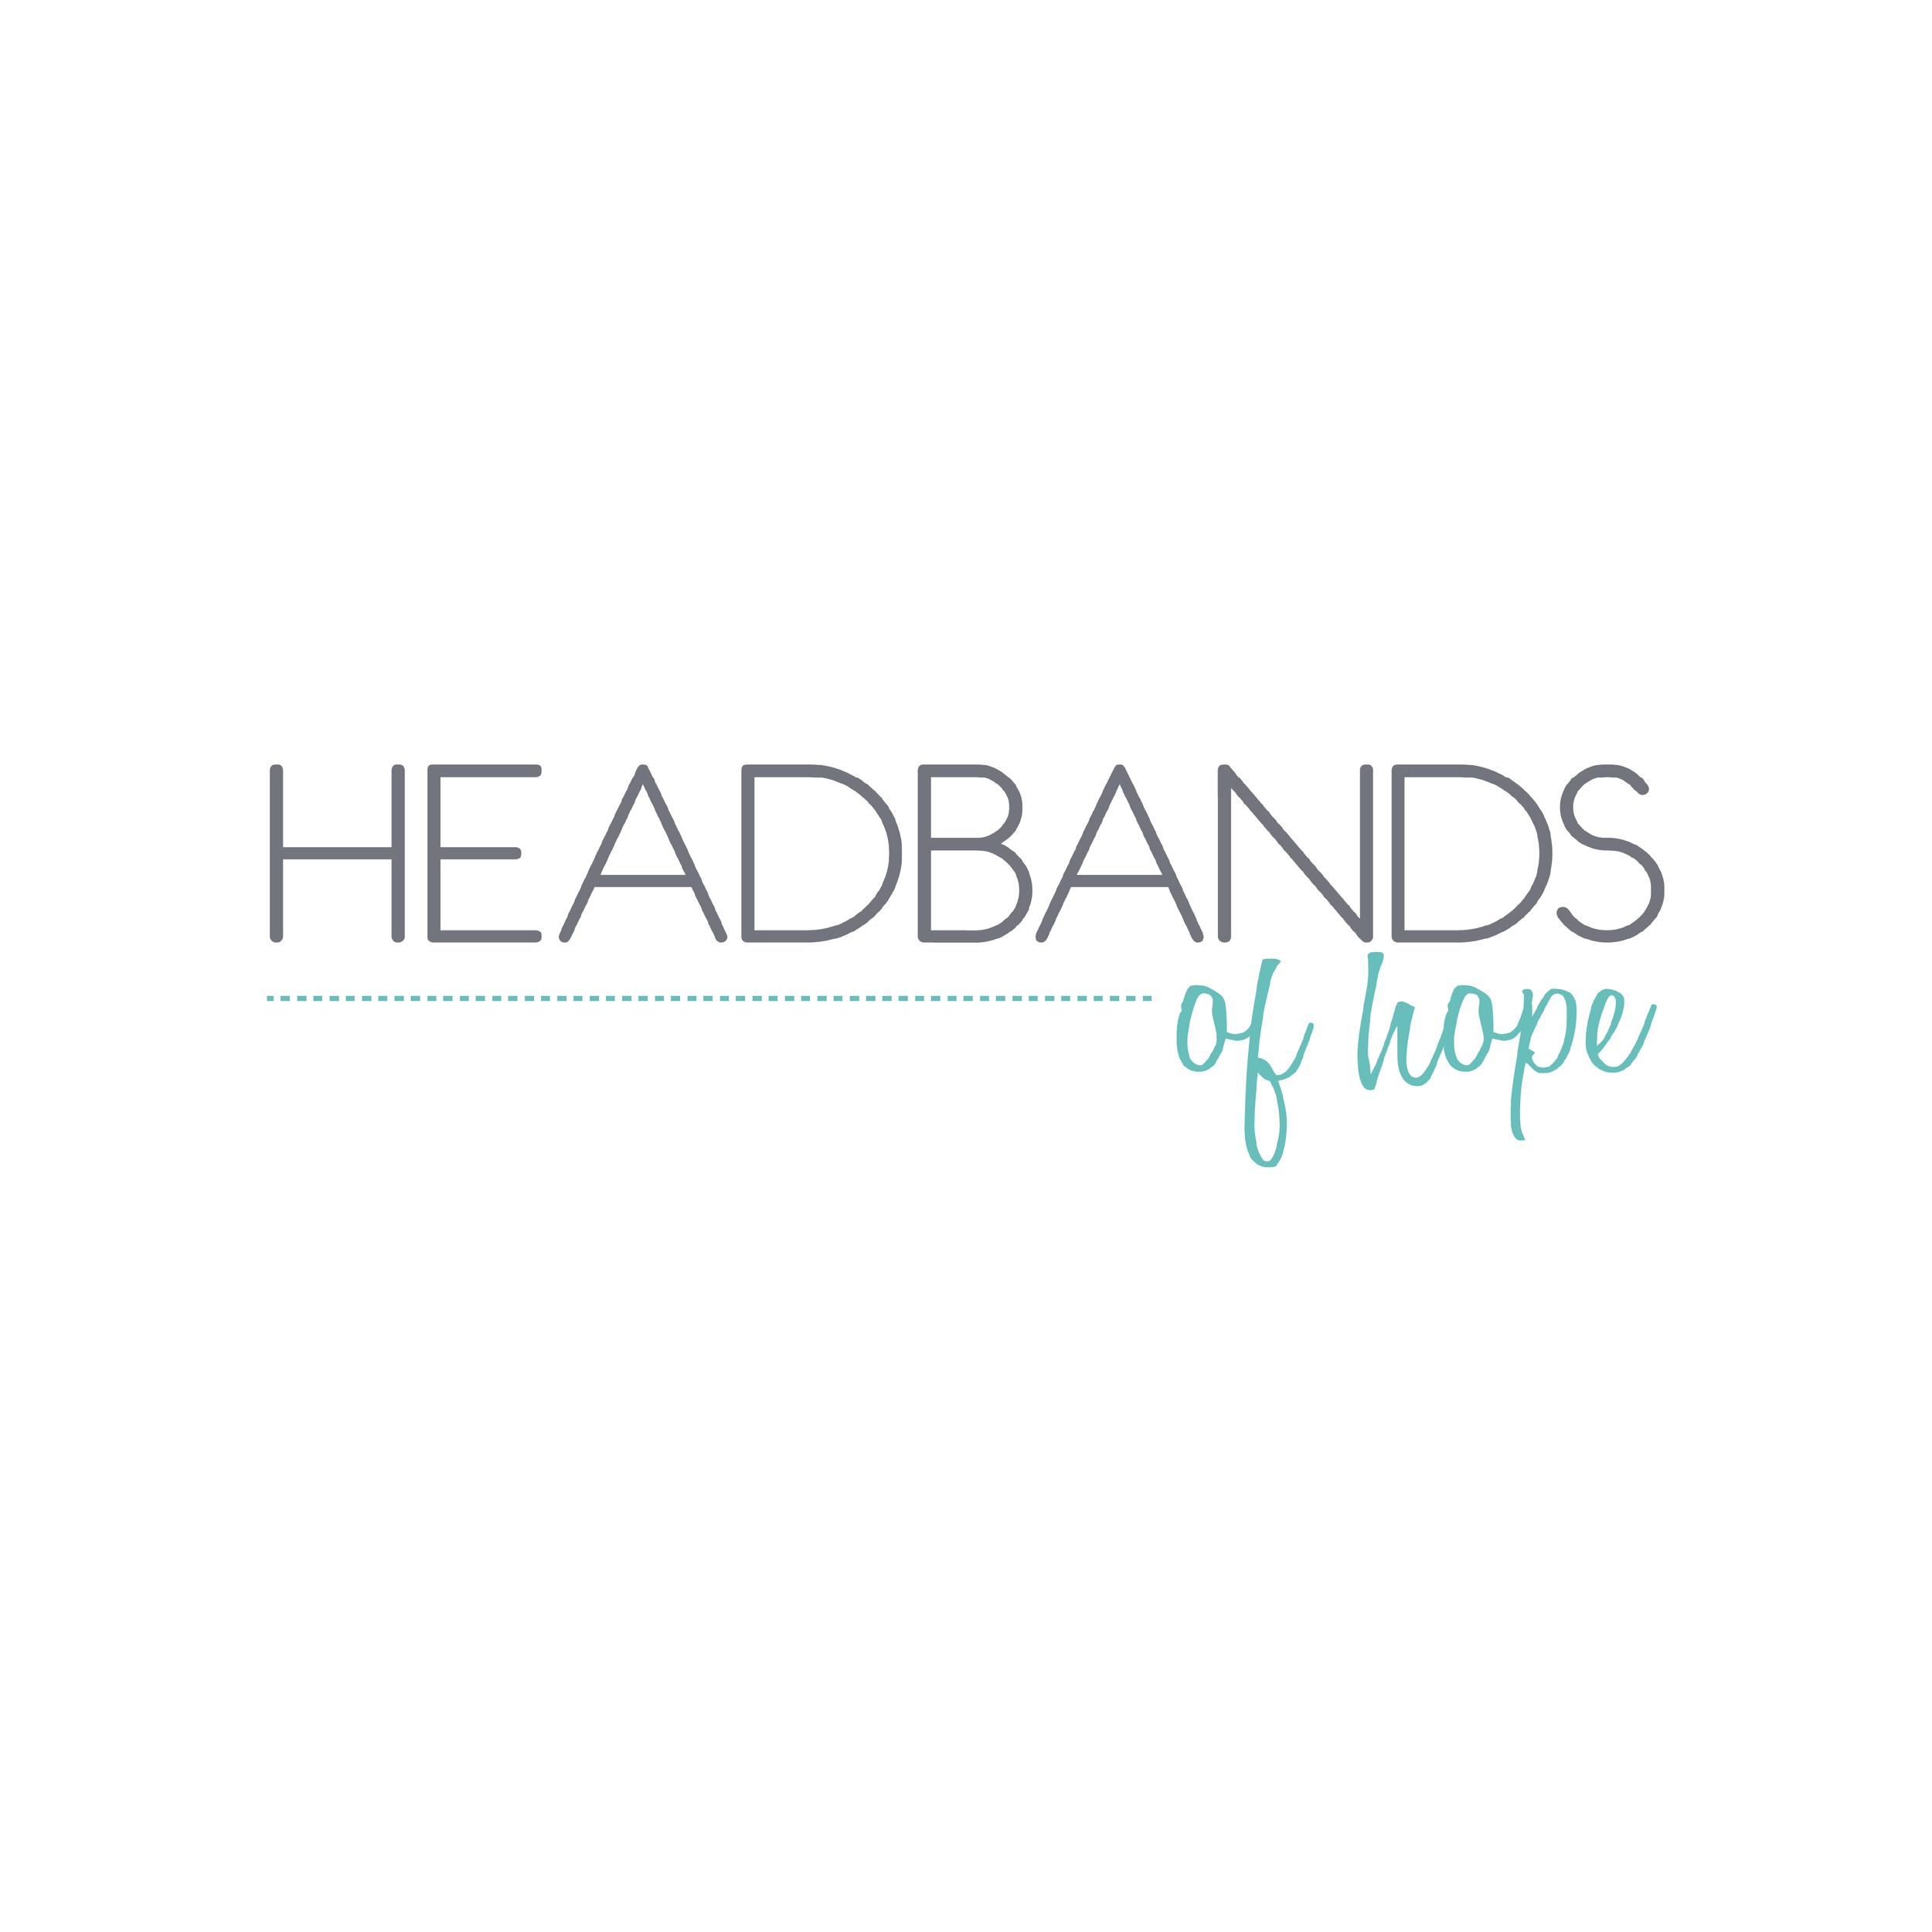 HeadbandsofHope